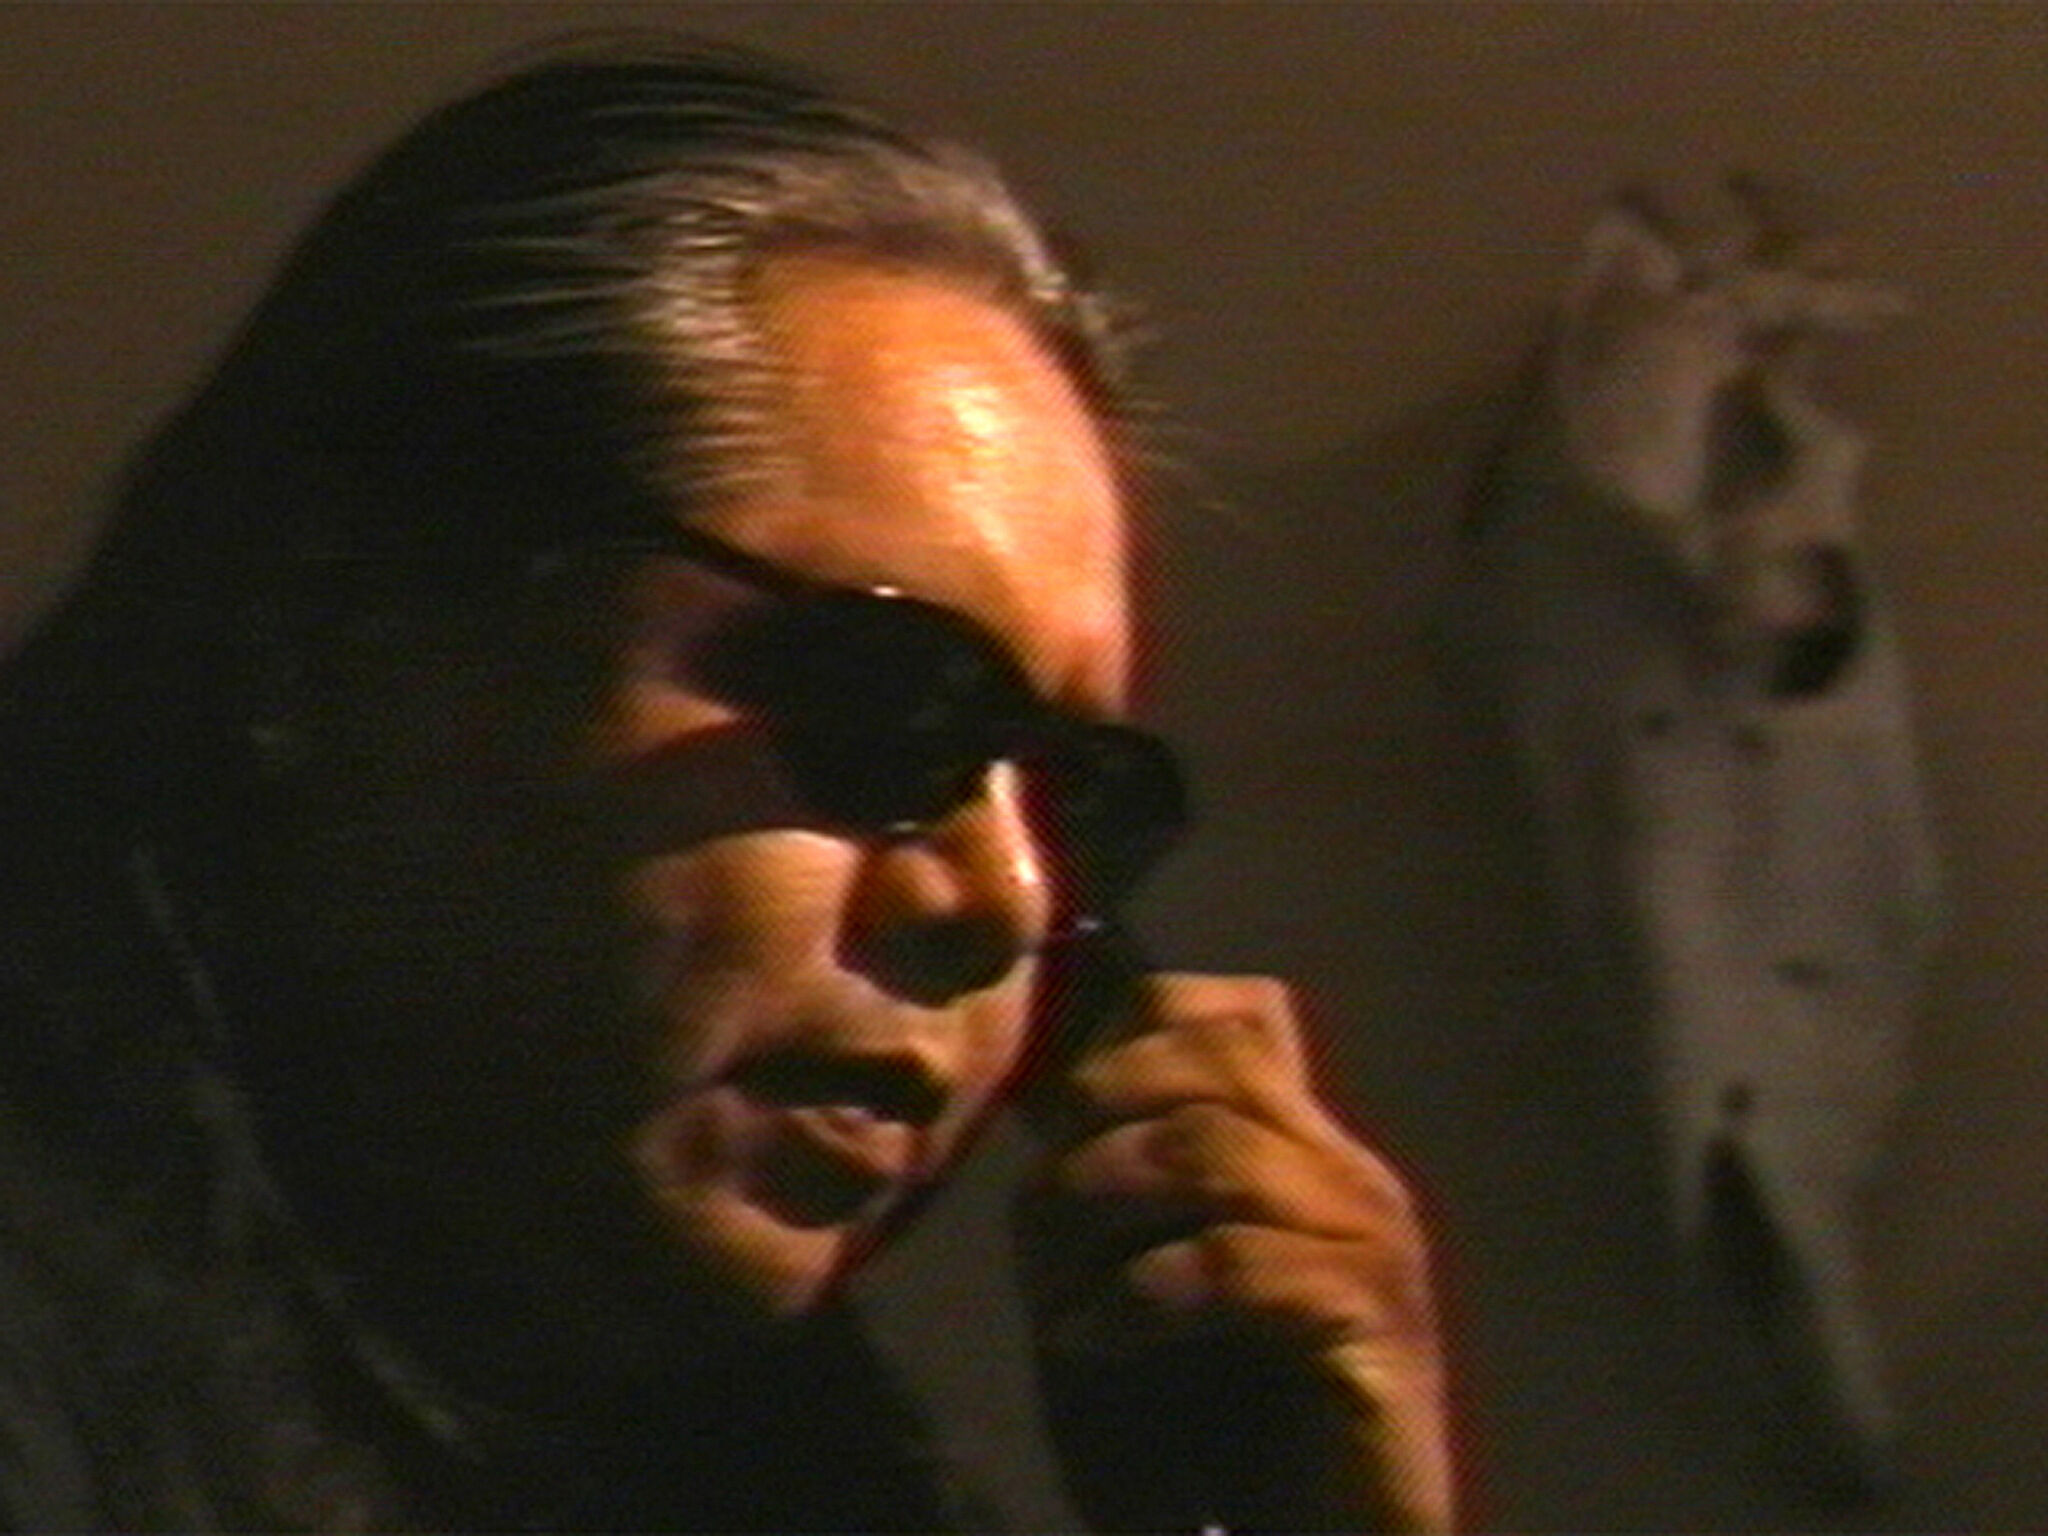 A close-up video still of a man wearing sunglasses.